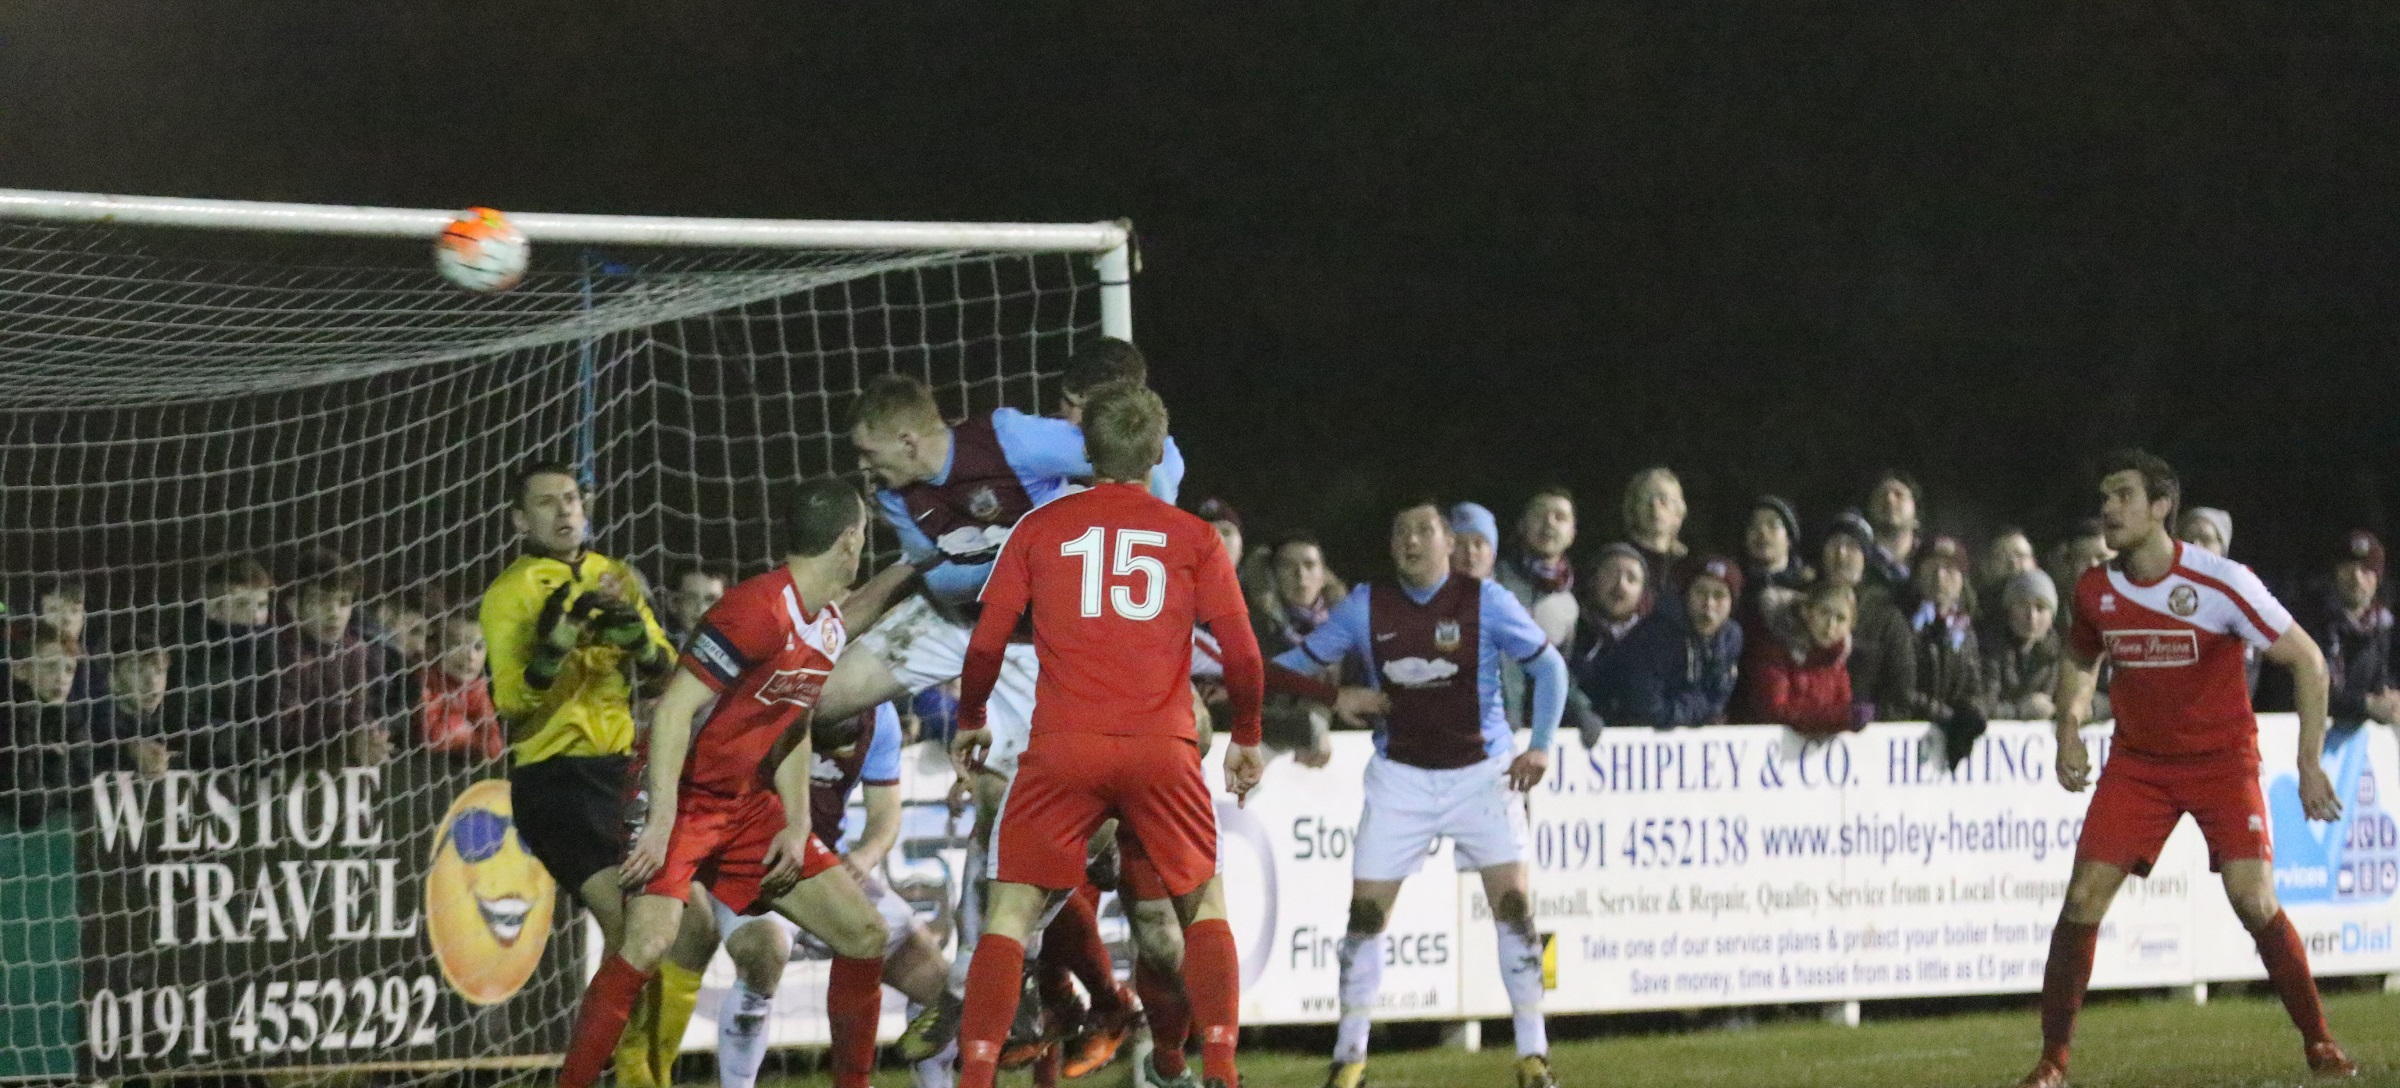 HIGHLIGHTS: South Shields 0-3 North Shields